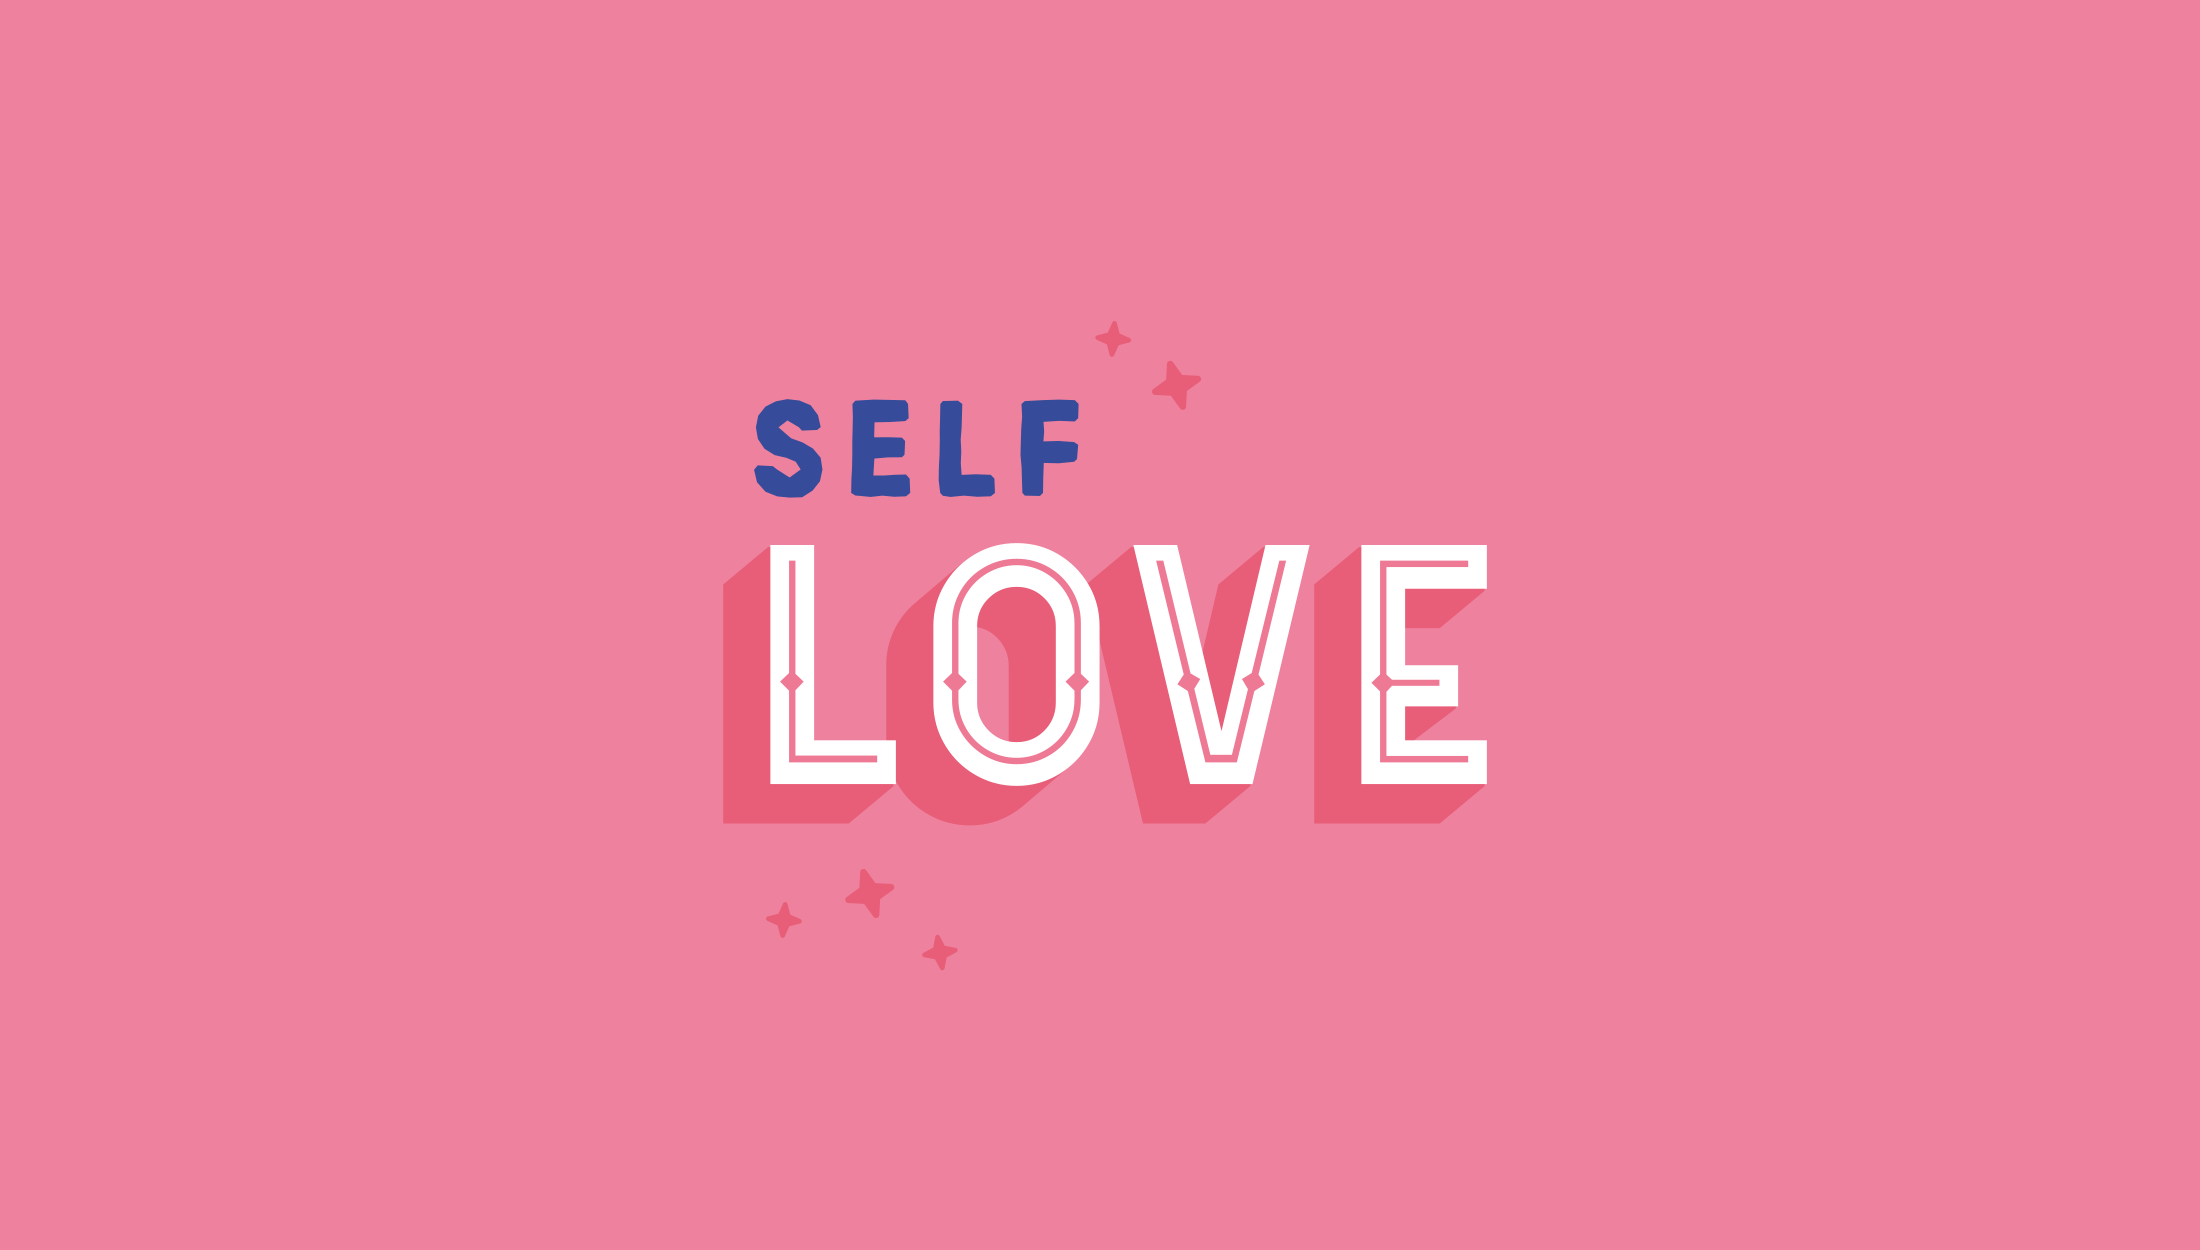 Affirmation logo mark design for My Radical Self, an online community and blog for women focusing on self-love, feminism and mindfulness - designed by Wiltshire-based graphic designer, Kaye Huett